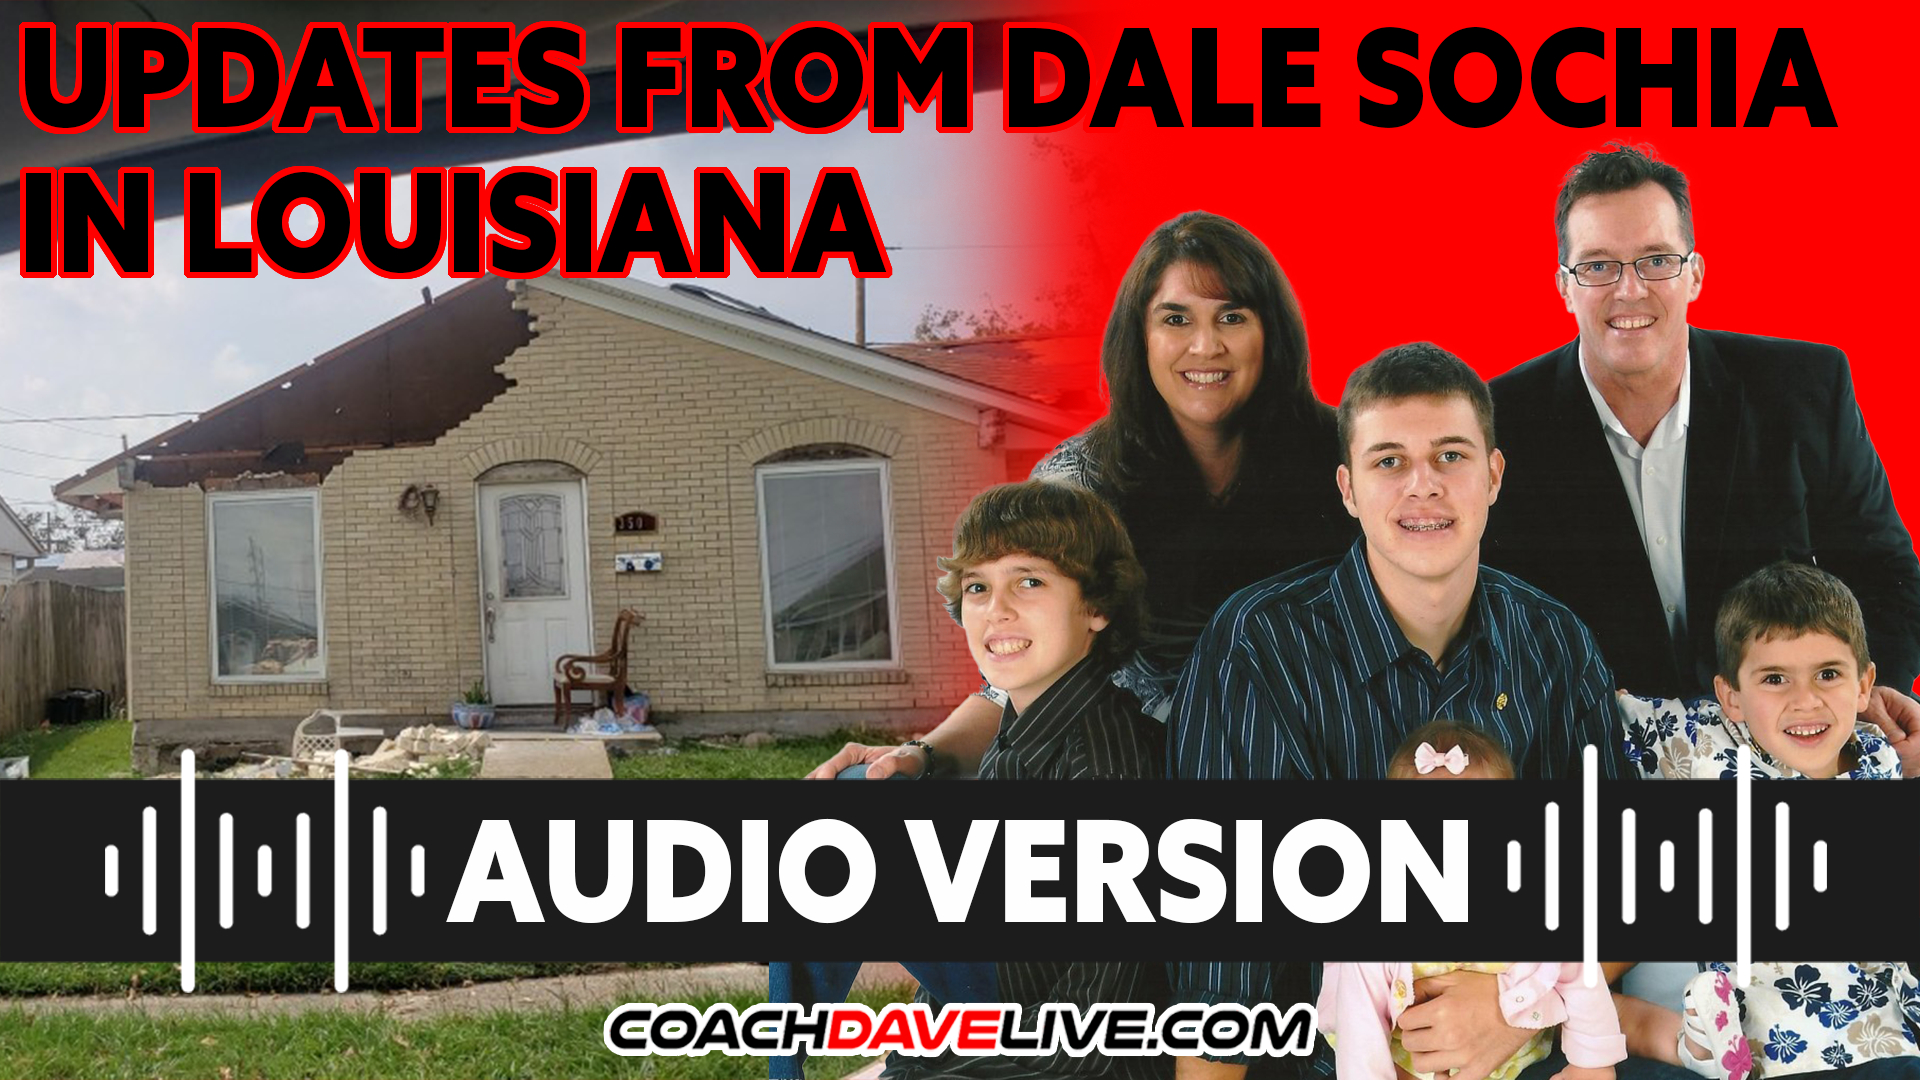 Coach Dave LIVE | 9-8-2021 | UPDATES FROM DALE SOCHIA IN LOUISIANA - AUDIO ONLY